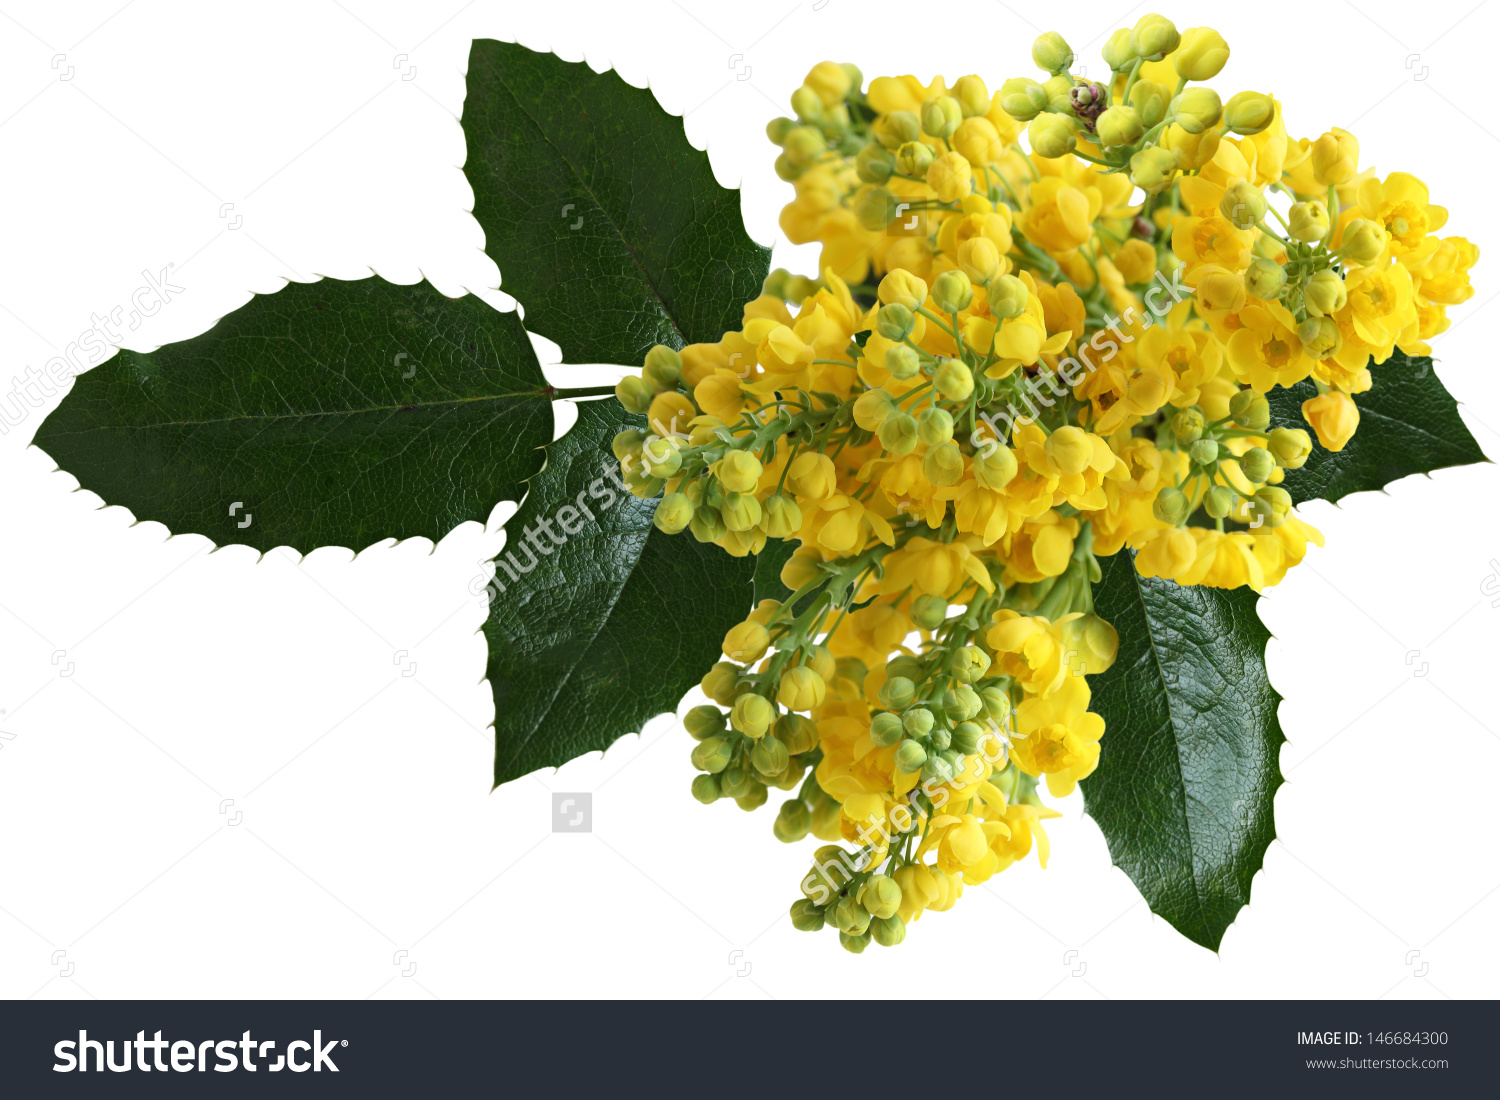 Mahonia Aquifolium Oregongrape Wild Flower Holly Stock Photo.